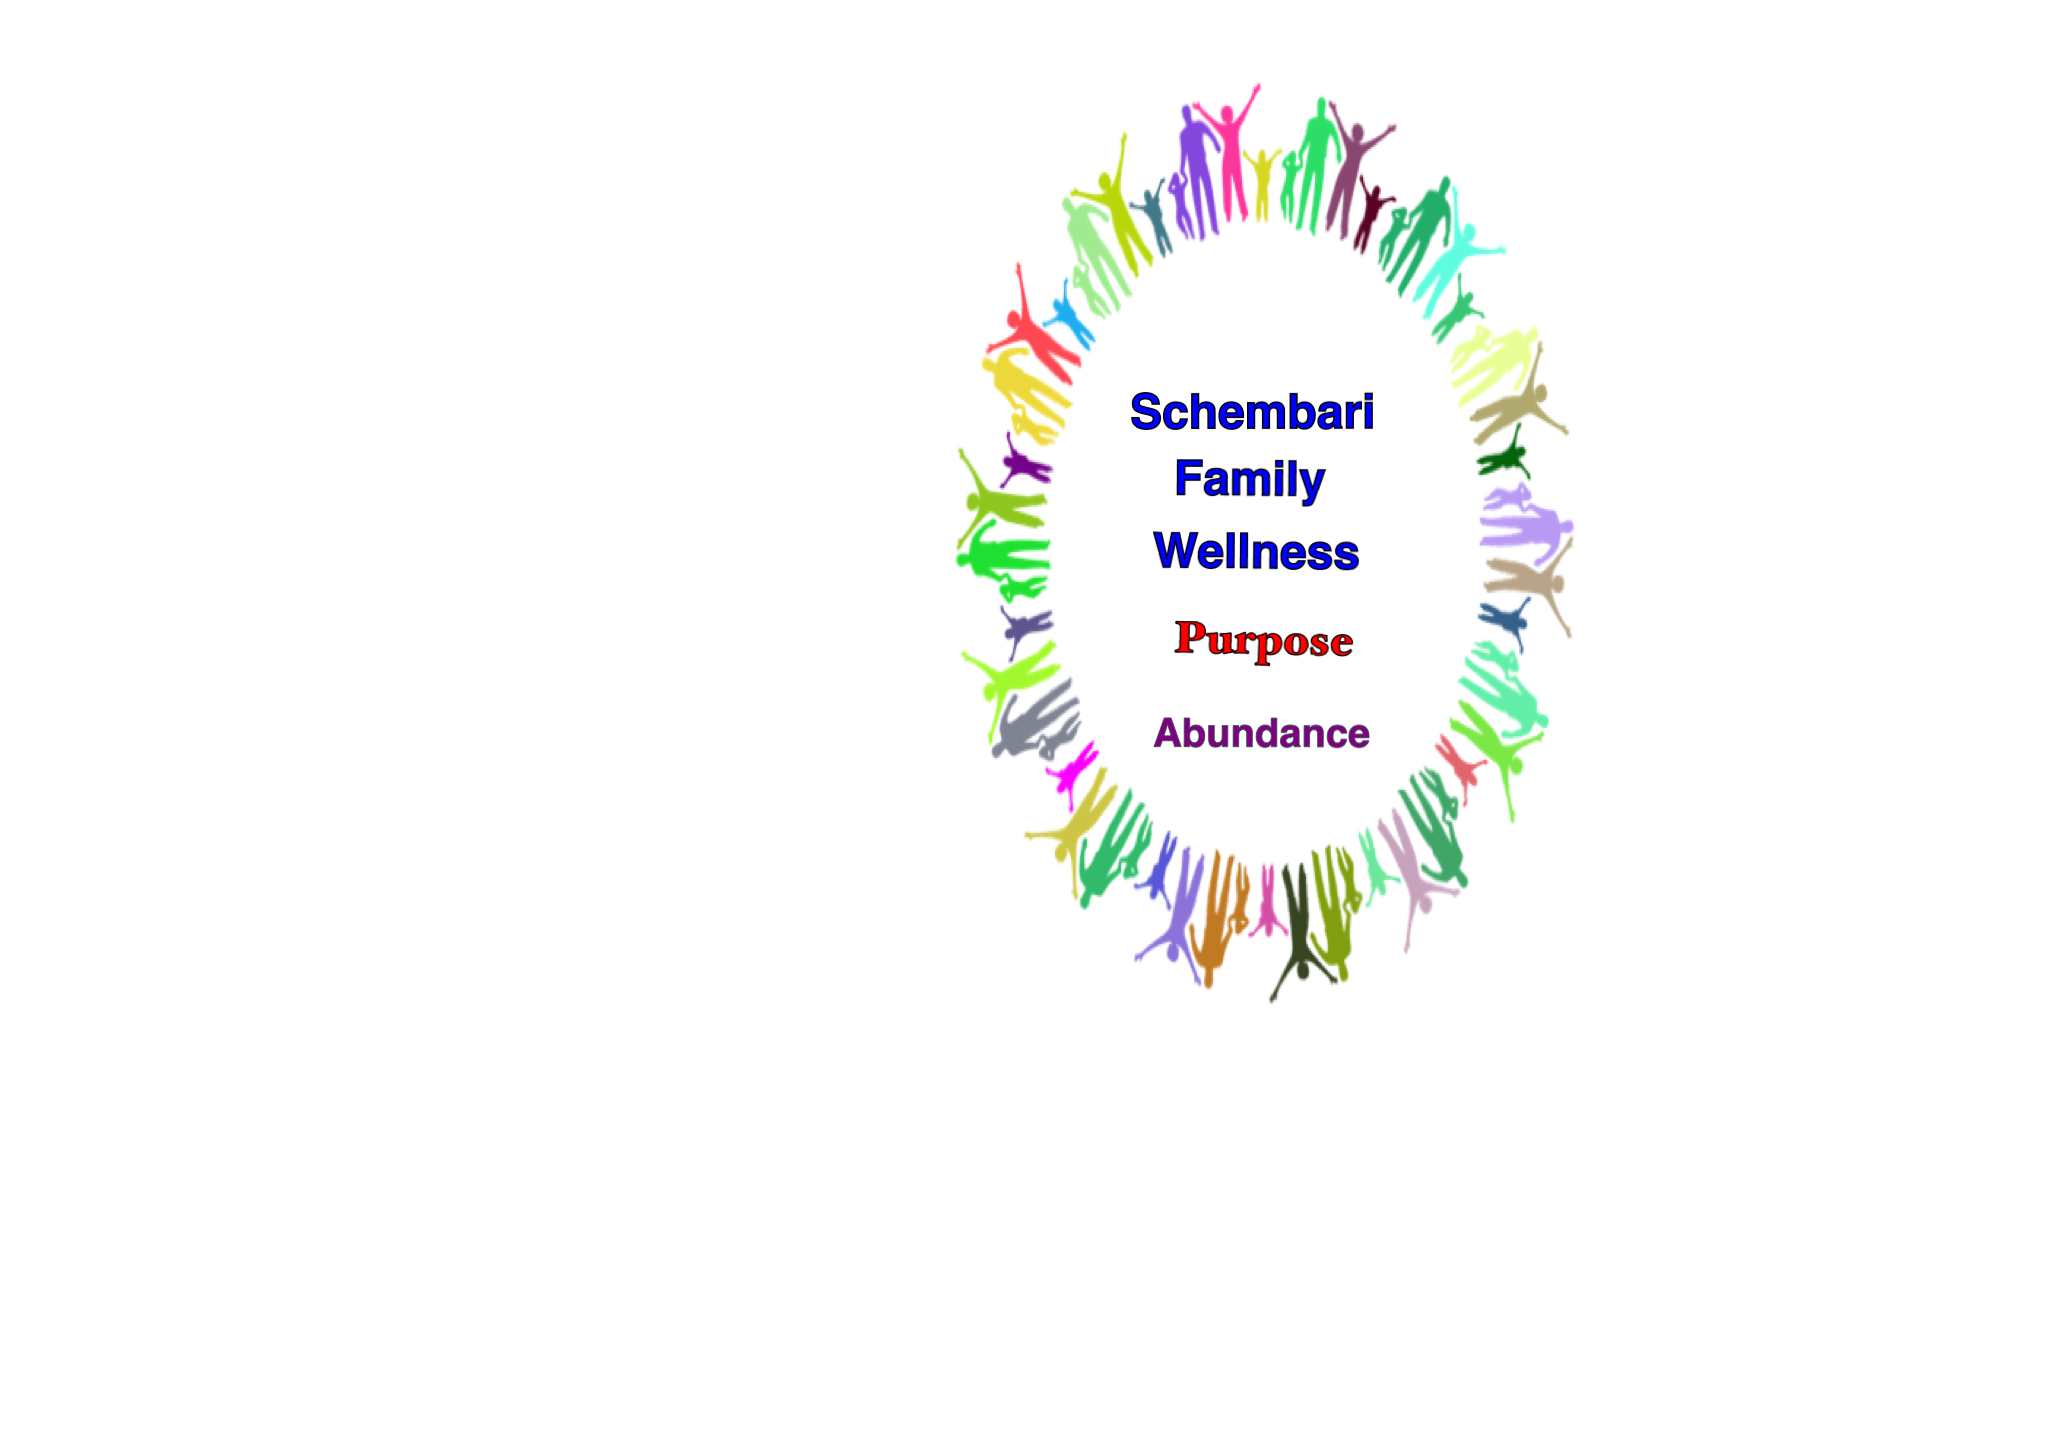 Schembari Family Wellness Purpose Abundance